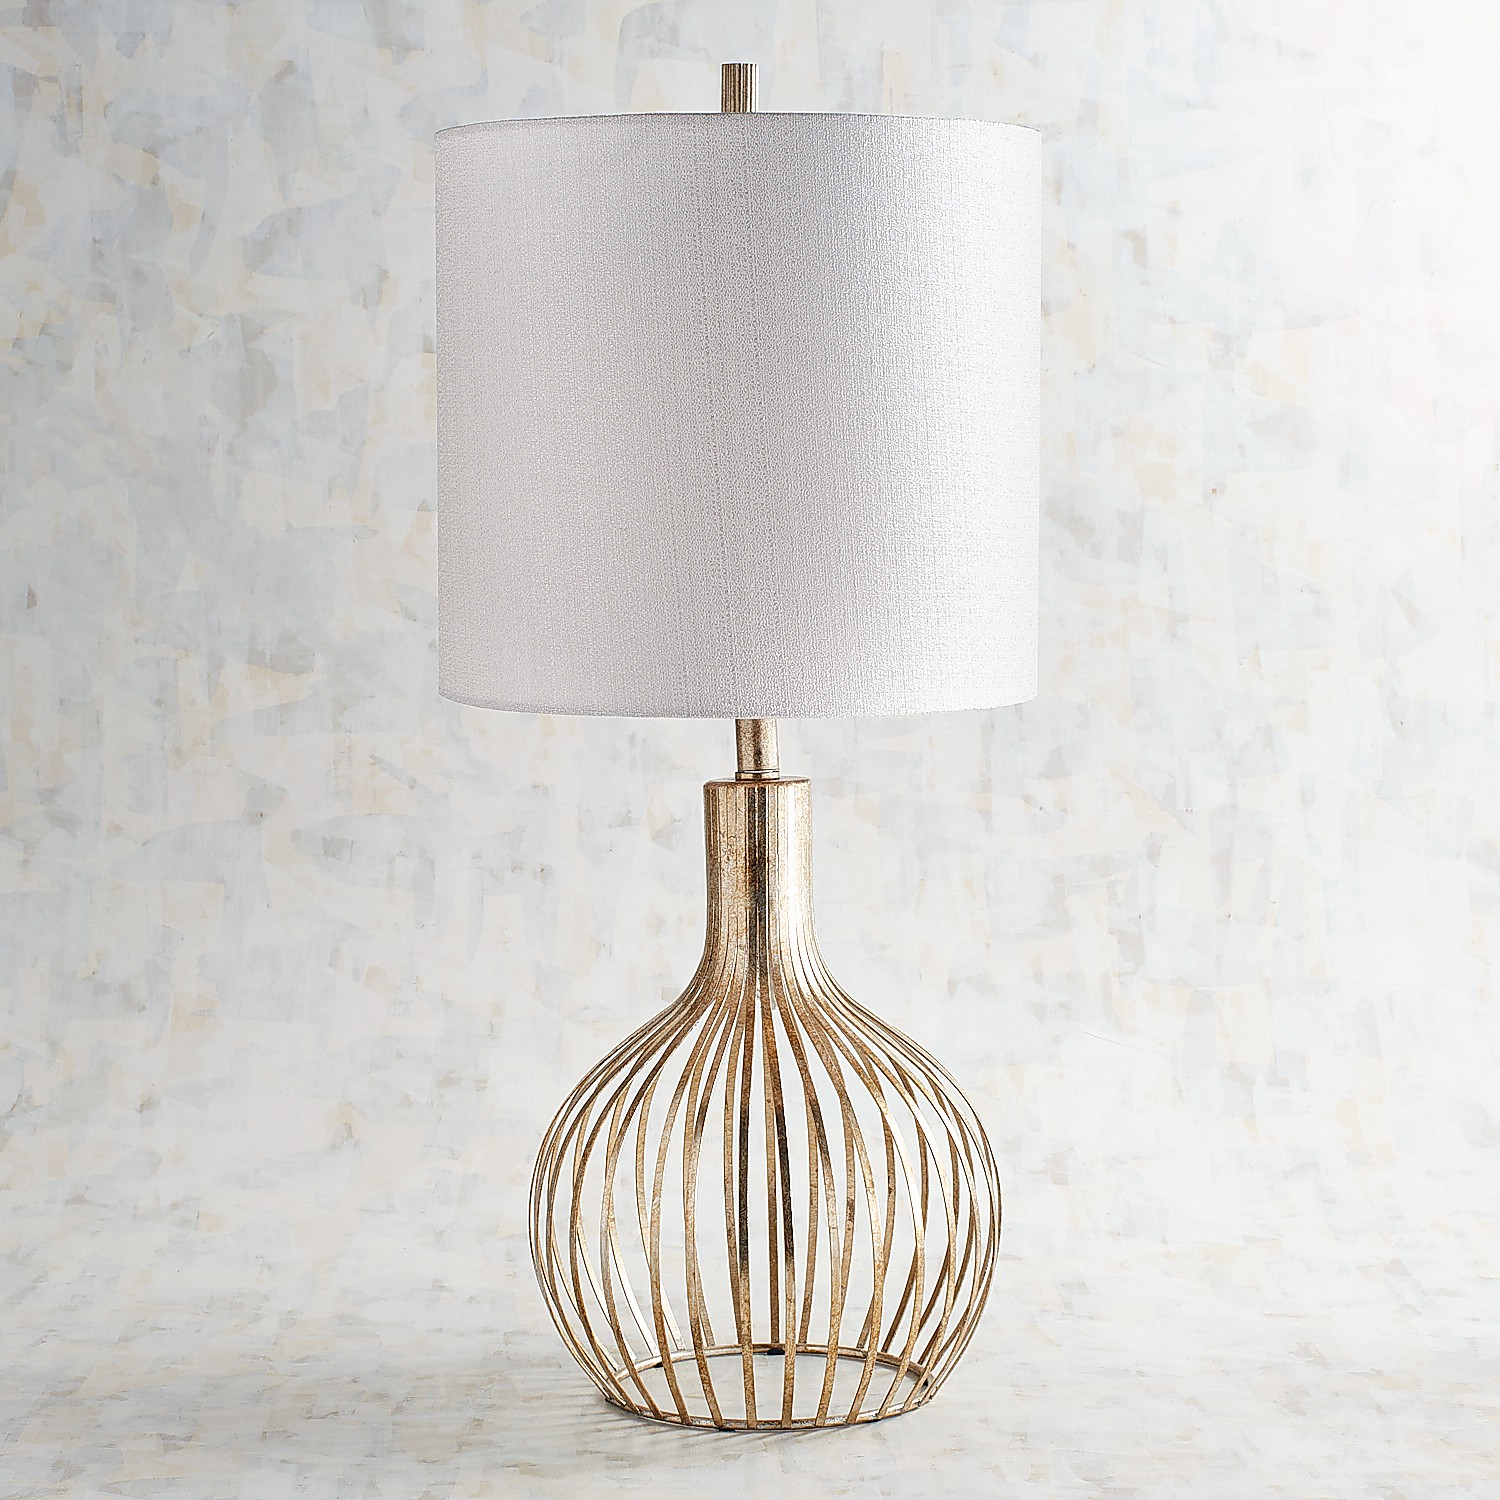 Golden Wire Table Lamp